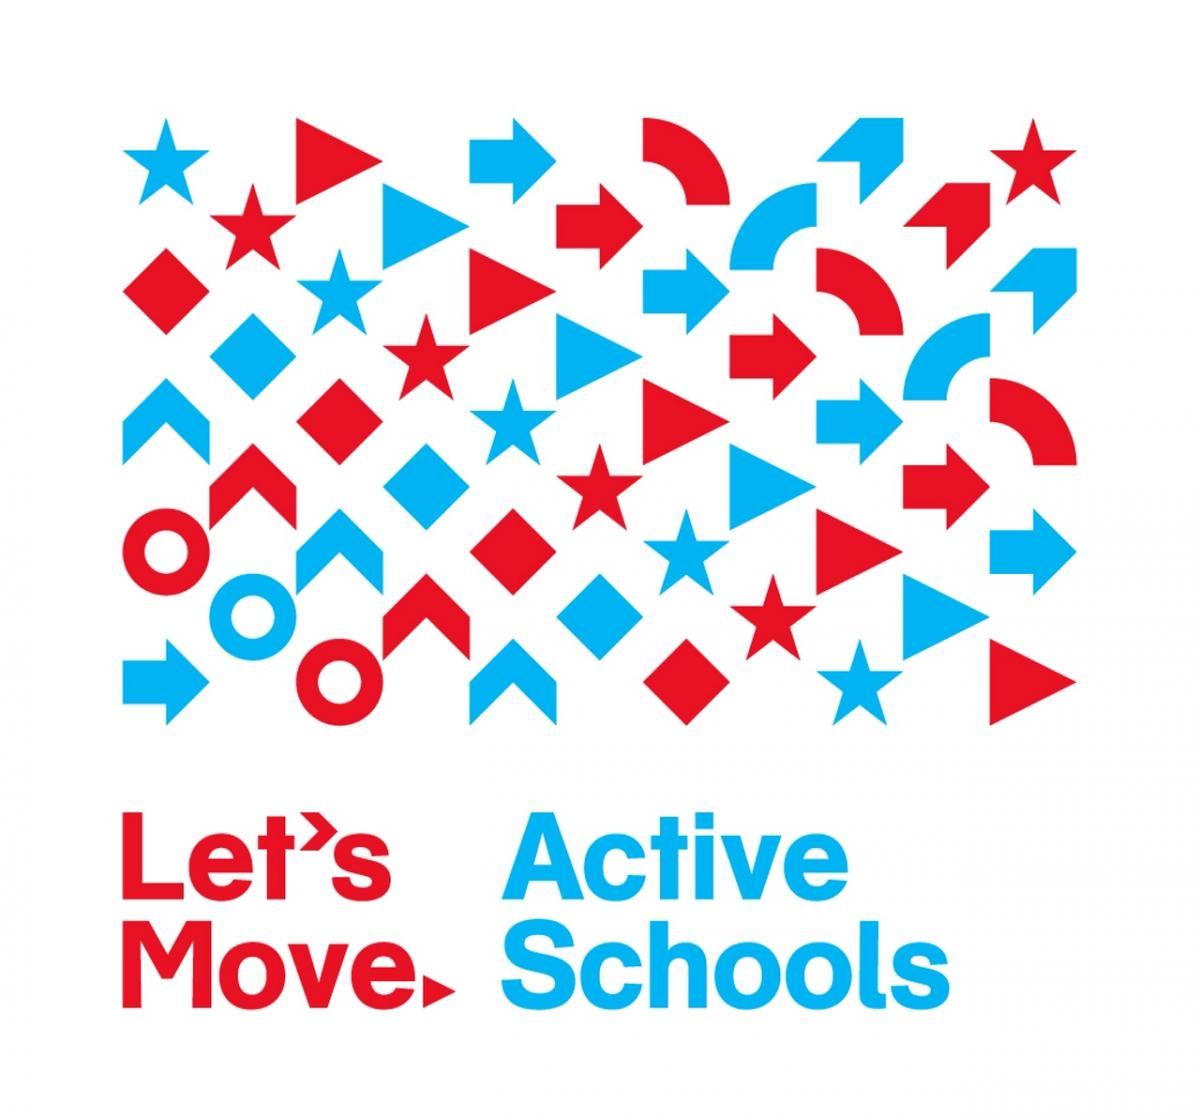 Let's Move Program